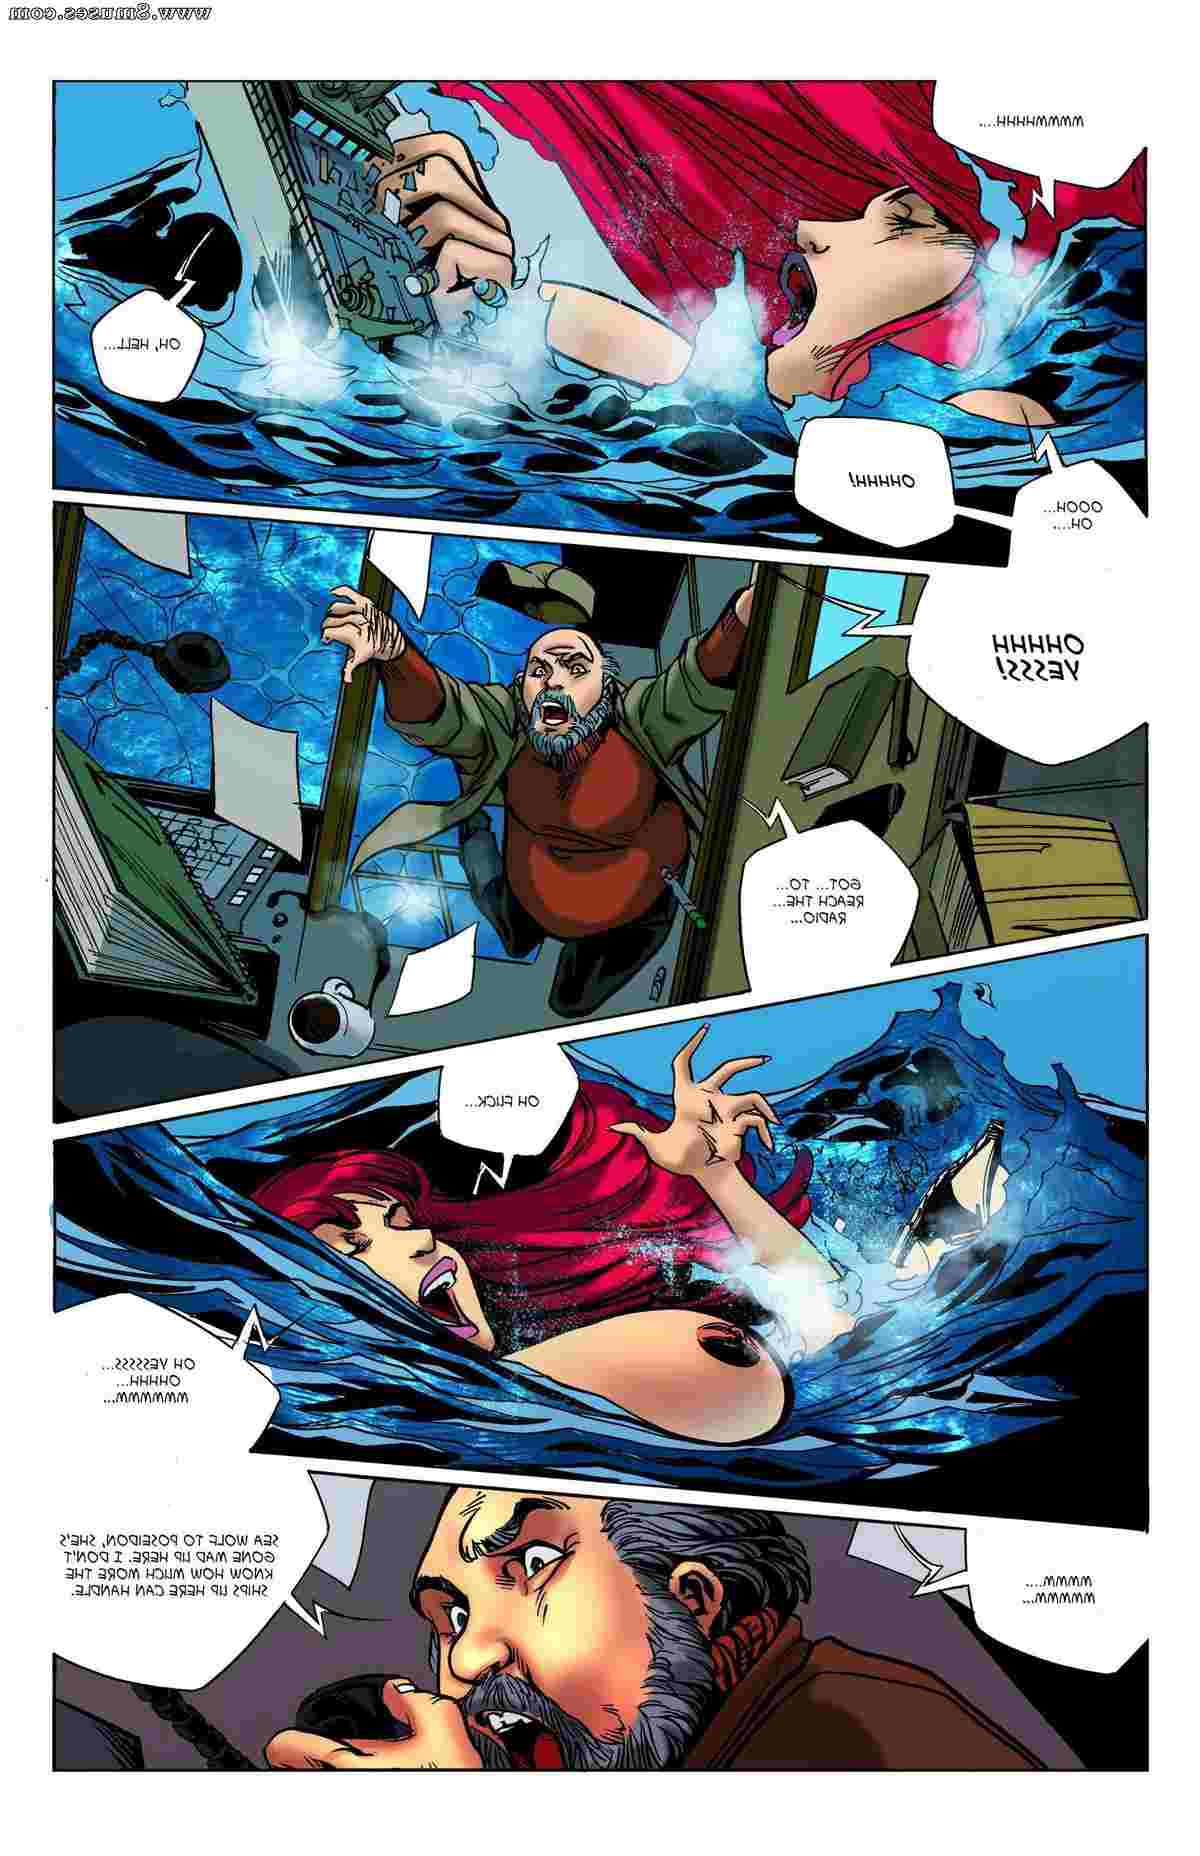 Giantess-Club-Comics/Bubbling-Up-from-the-Abyss Bubbling_Up_from_the_Abyss__8muses_-_Sex_and_Porn_Comics_54.jpg